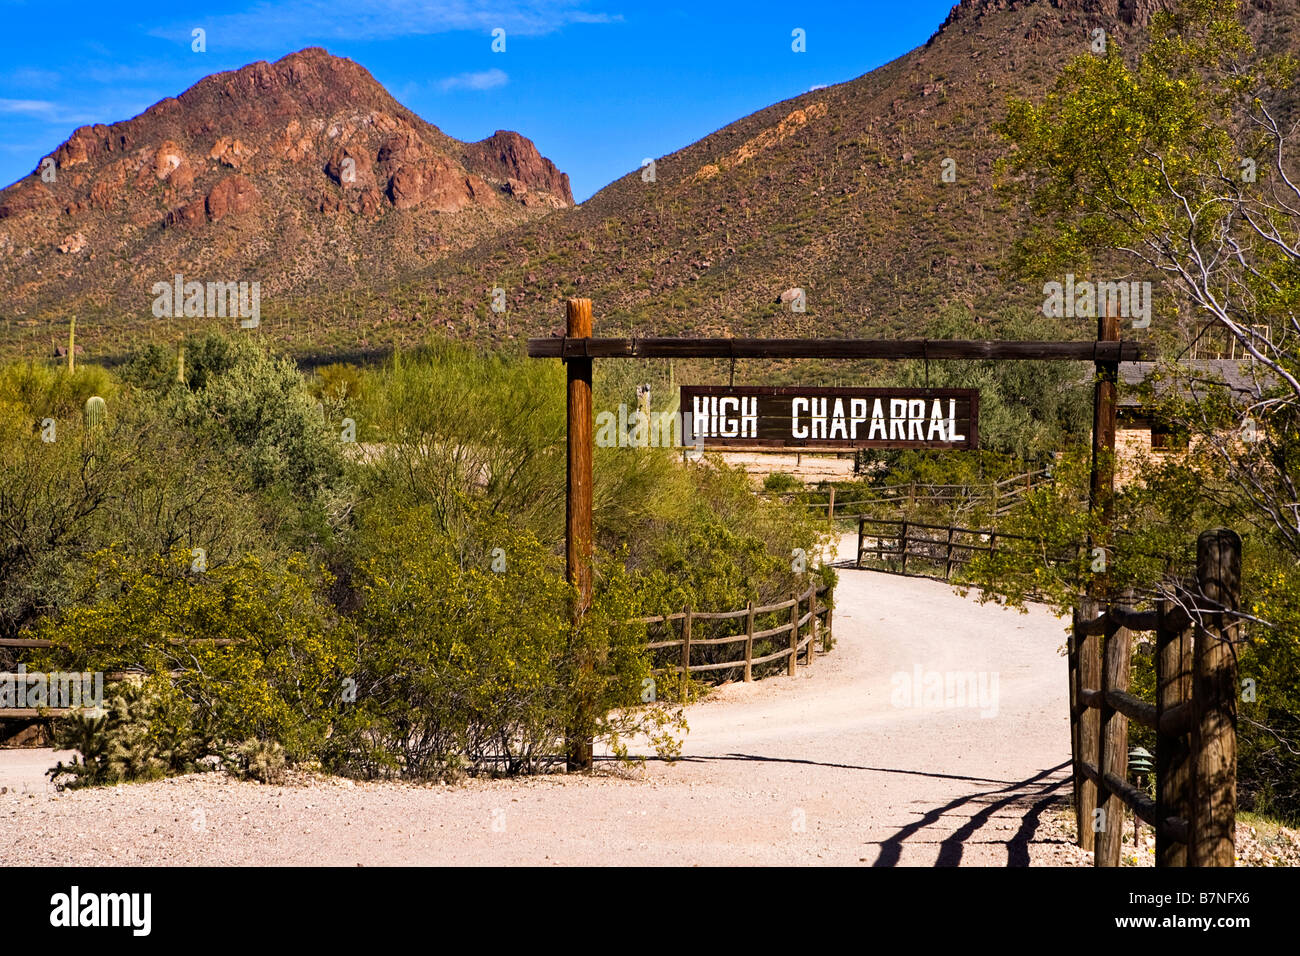 Image looking down the road and through the hanging overhead sign for the High Chaparell film location in Old tucson - Stock Image